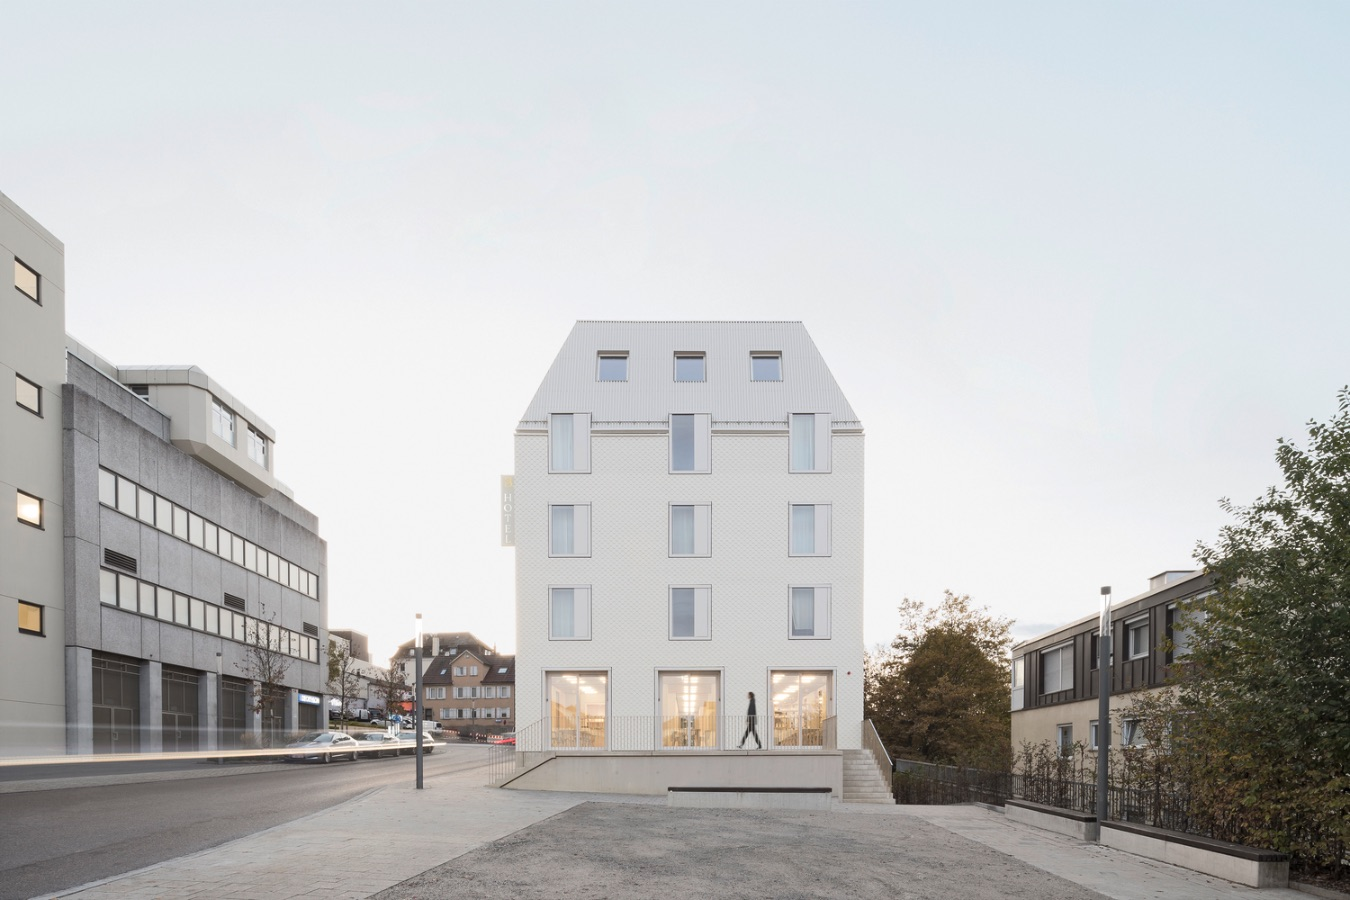 Hotel Bauhofstrasse is a consistent sustainable building with eyes on the future